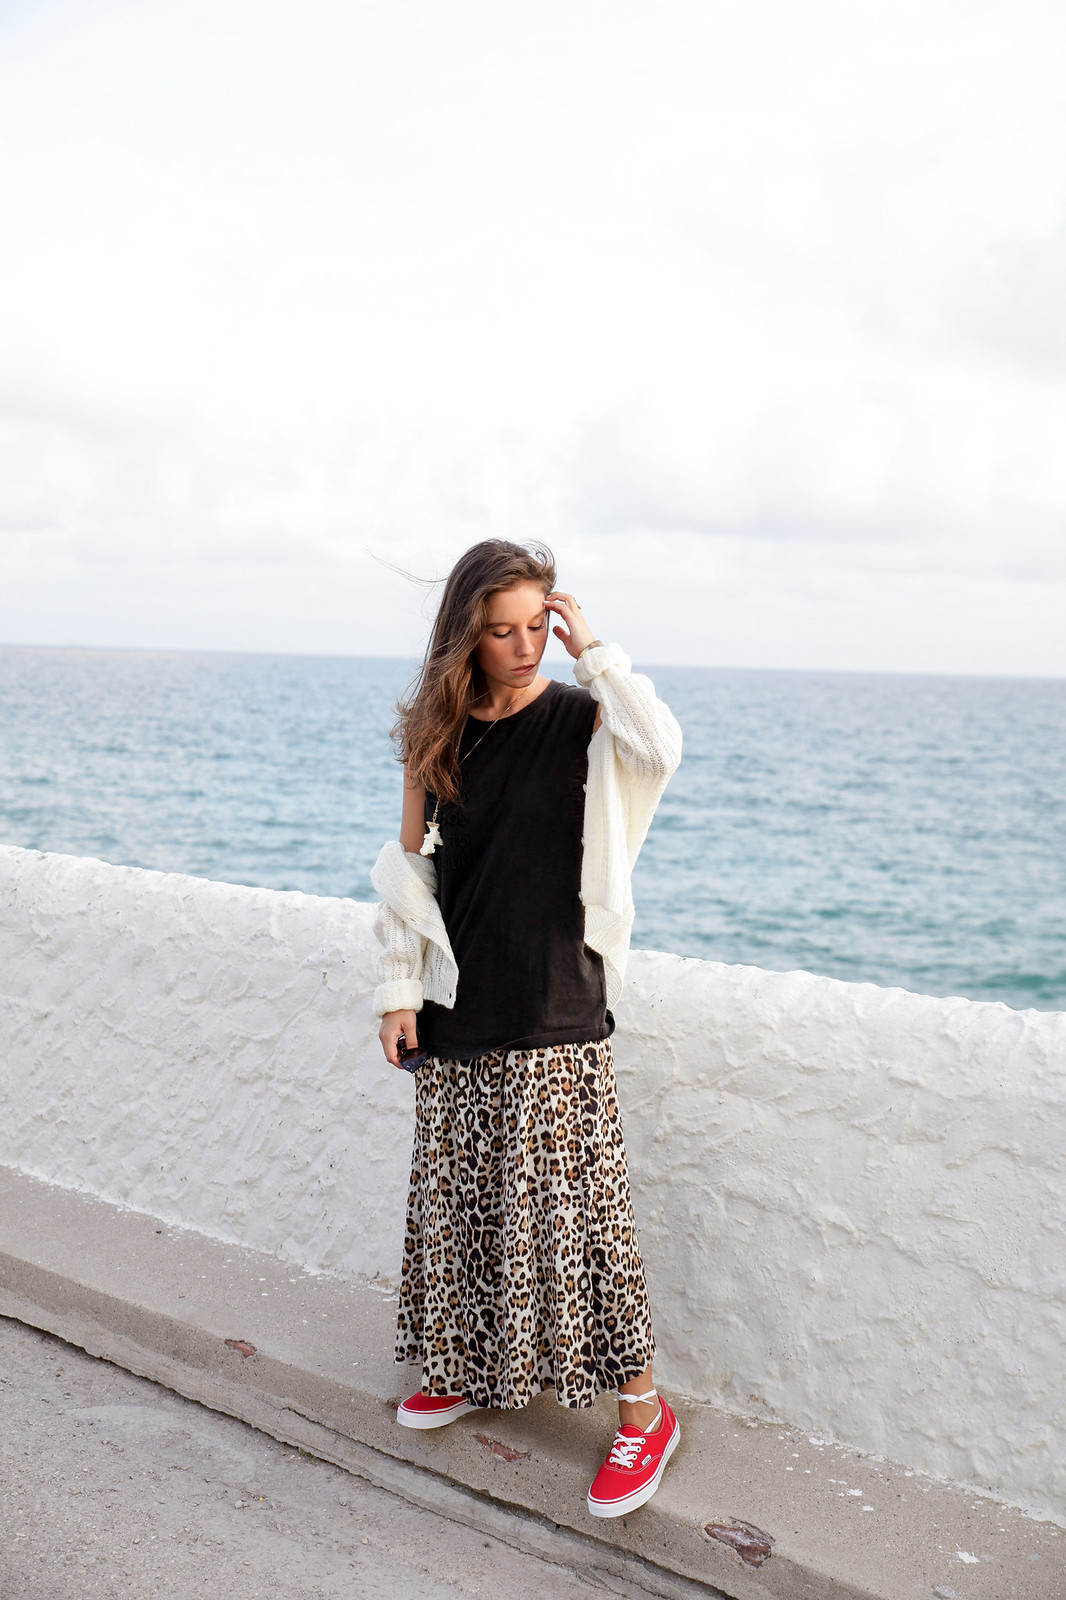 theguestgirl the guest girl laura santolaria influencer barcelona falda larga leopardo tendencia otoño invierno